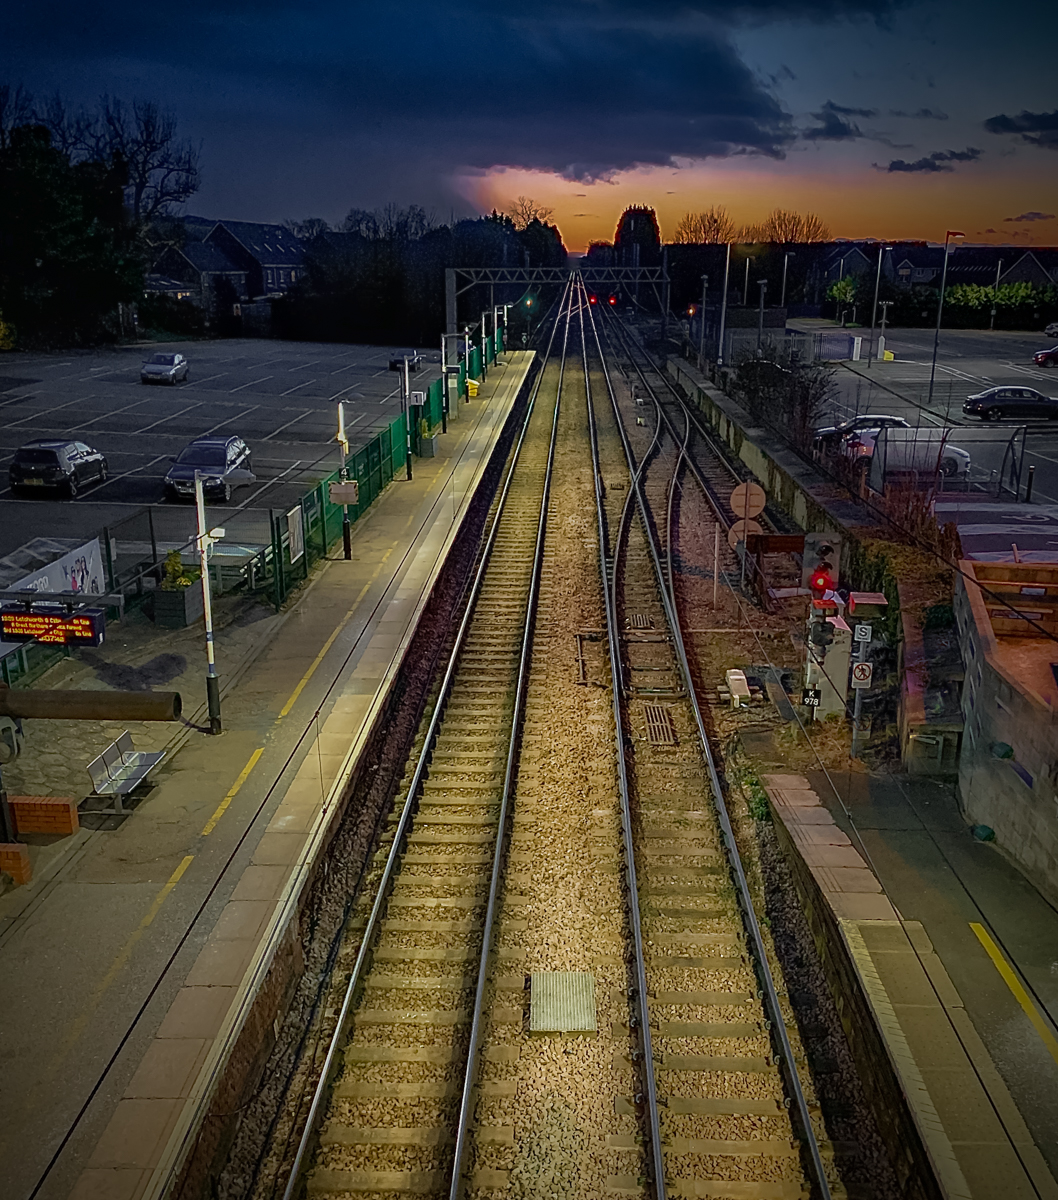 Royston station. Taken on phone for competition